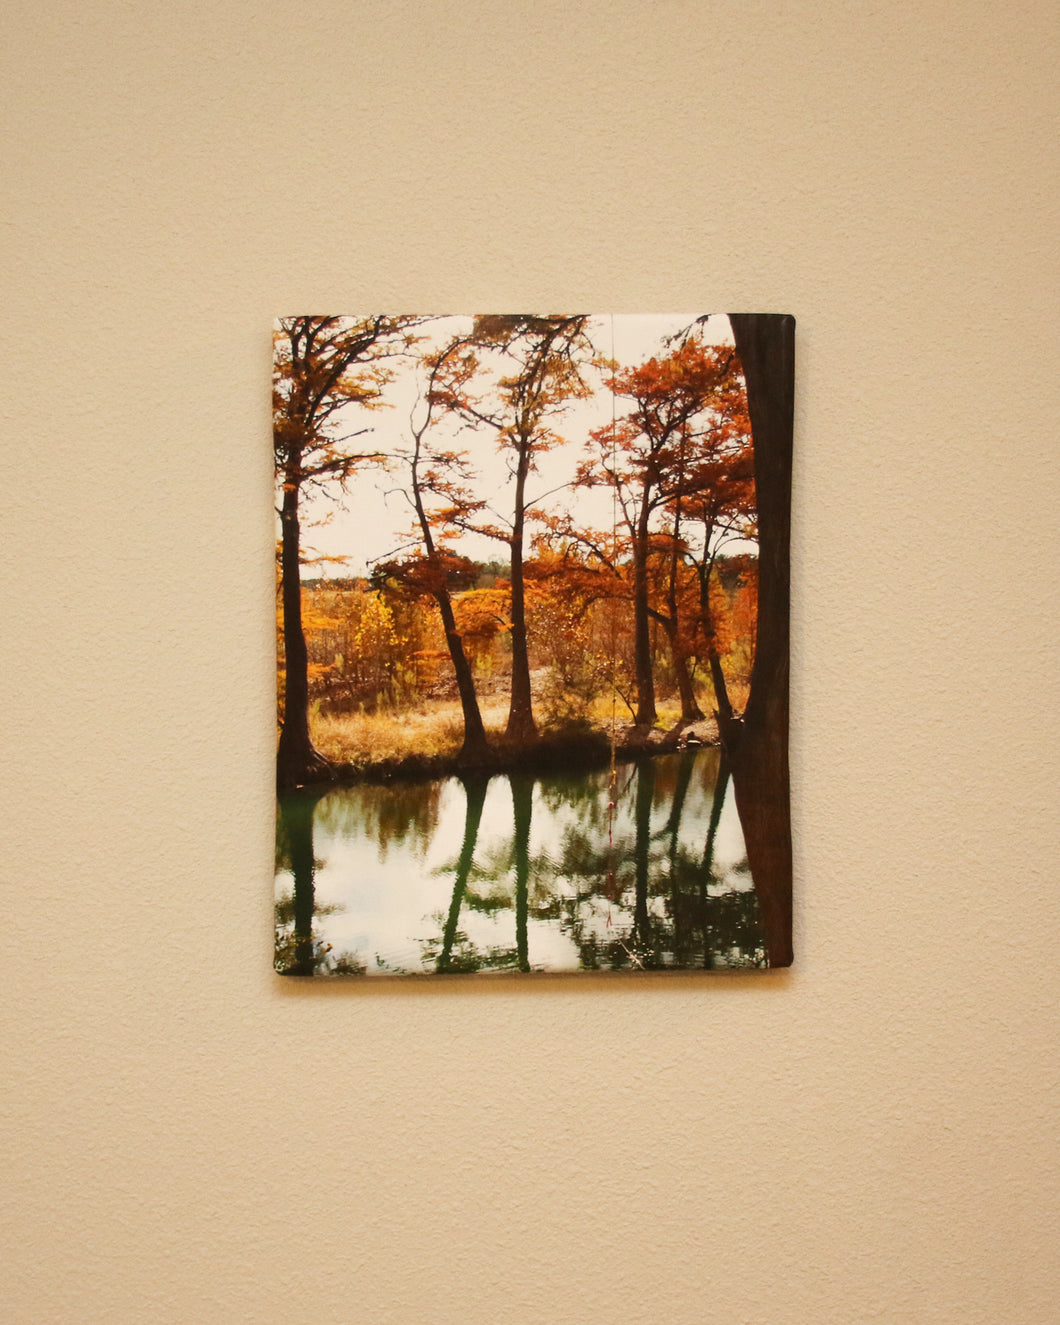 11x14 Photo Canvas